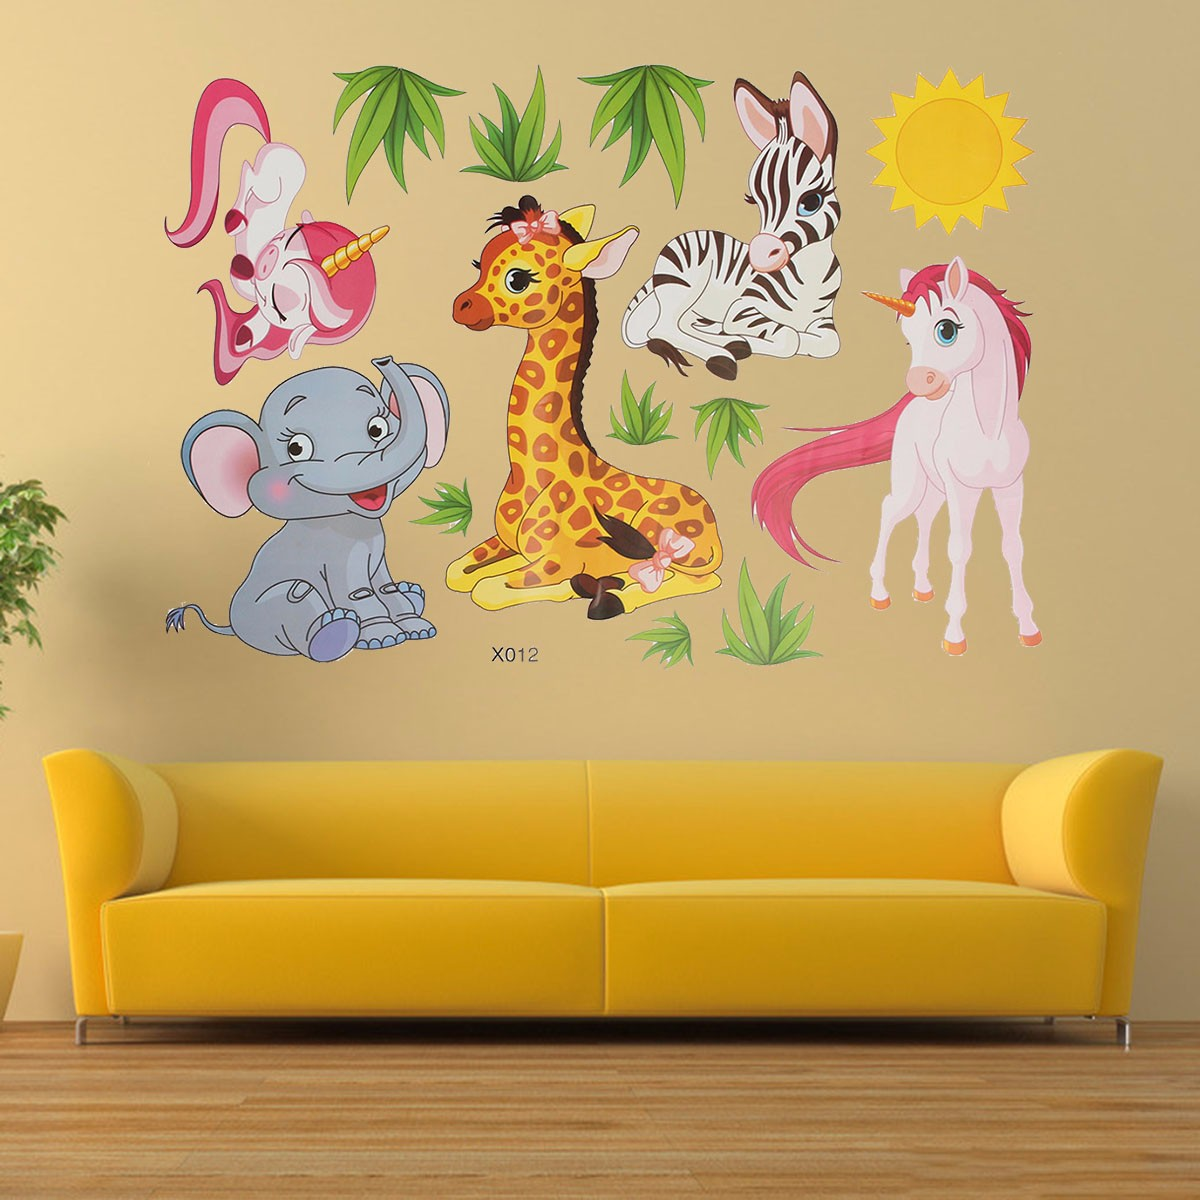 Cartoon Animal Elephant Giraffes Grass Bedroom Removable Wall ...